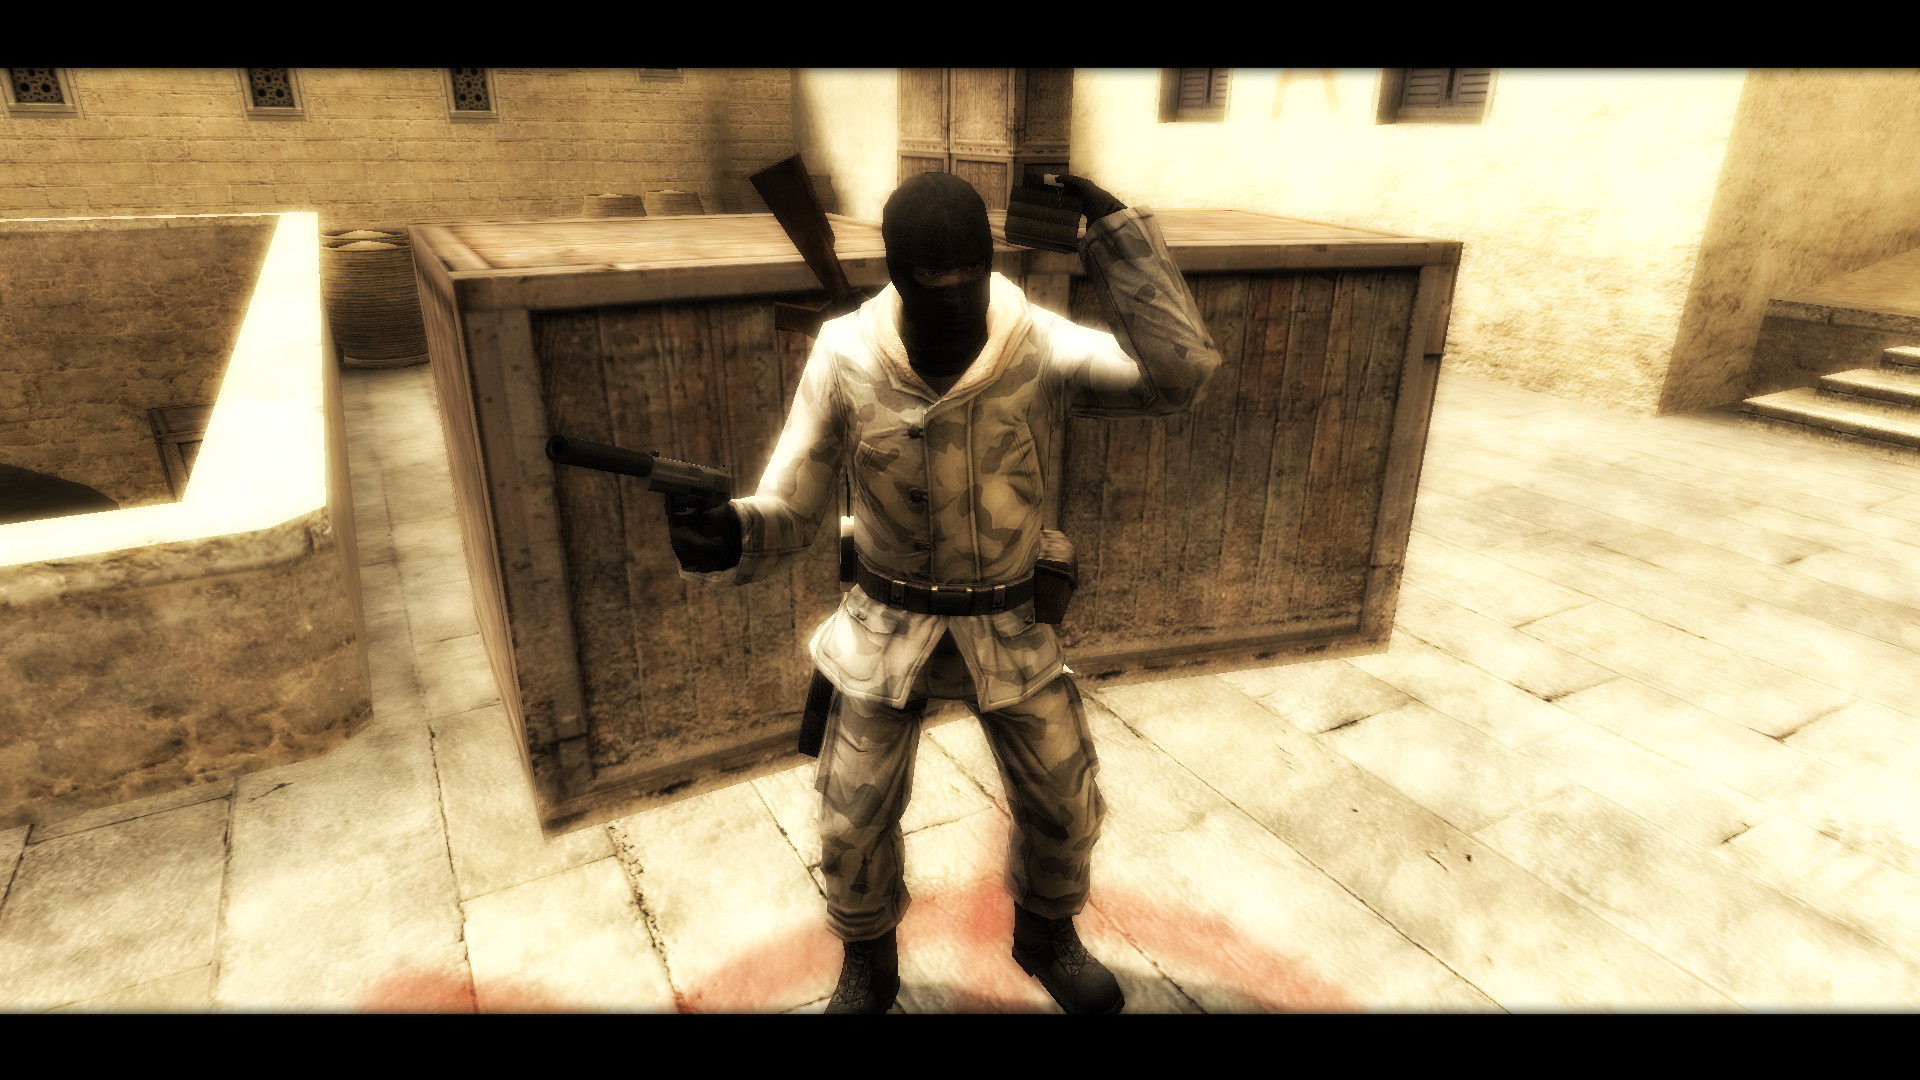 Res: 1920x1080, ... Garry's Mod - Counter strike: Source [Wallpaper] by demon1887